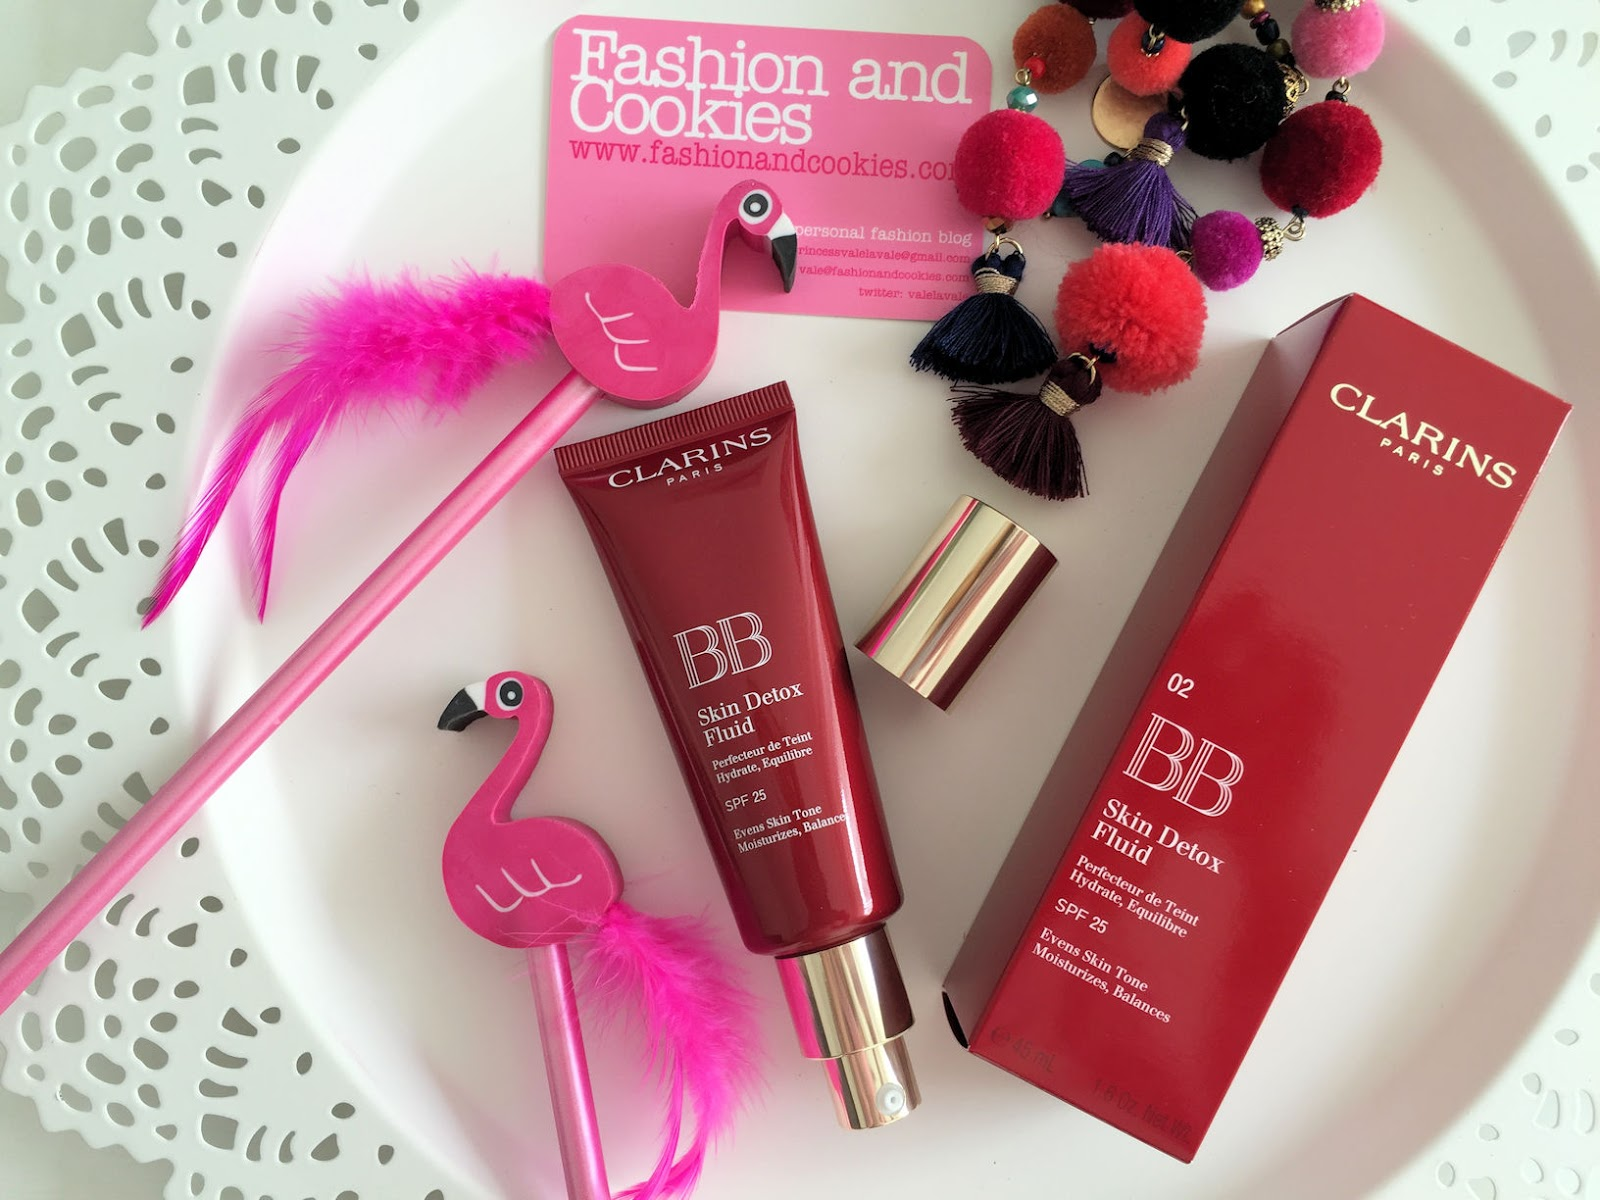 Clarins makeup Instant Glow Spring 2016 BB Detox fluid review on Fashion and Cookies beauty blog, beauty blogger